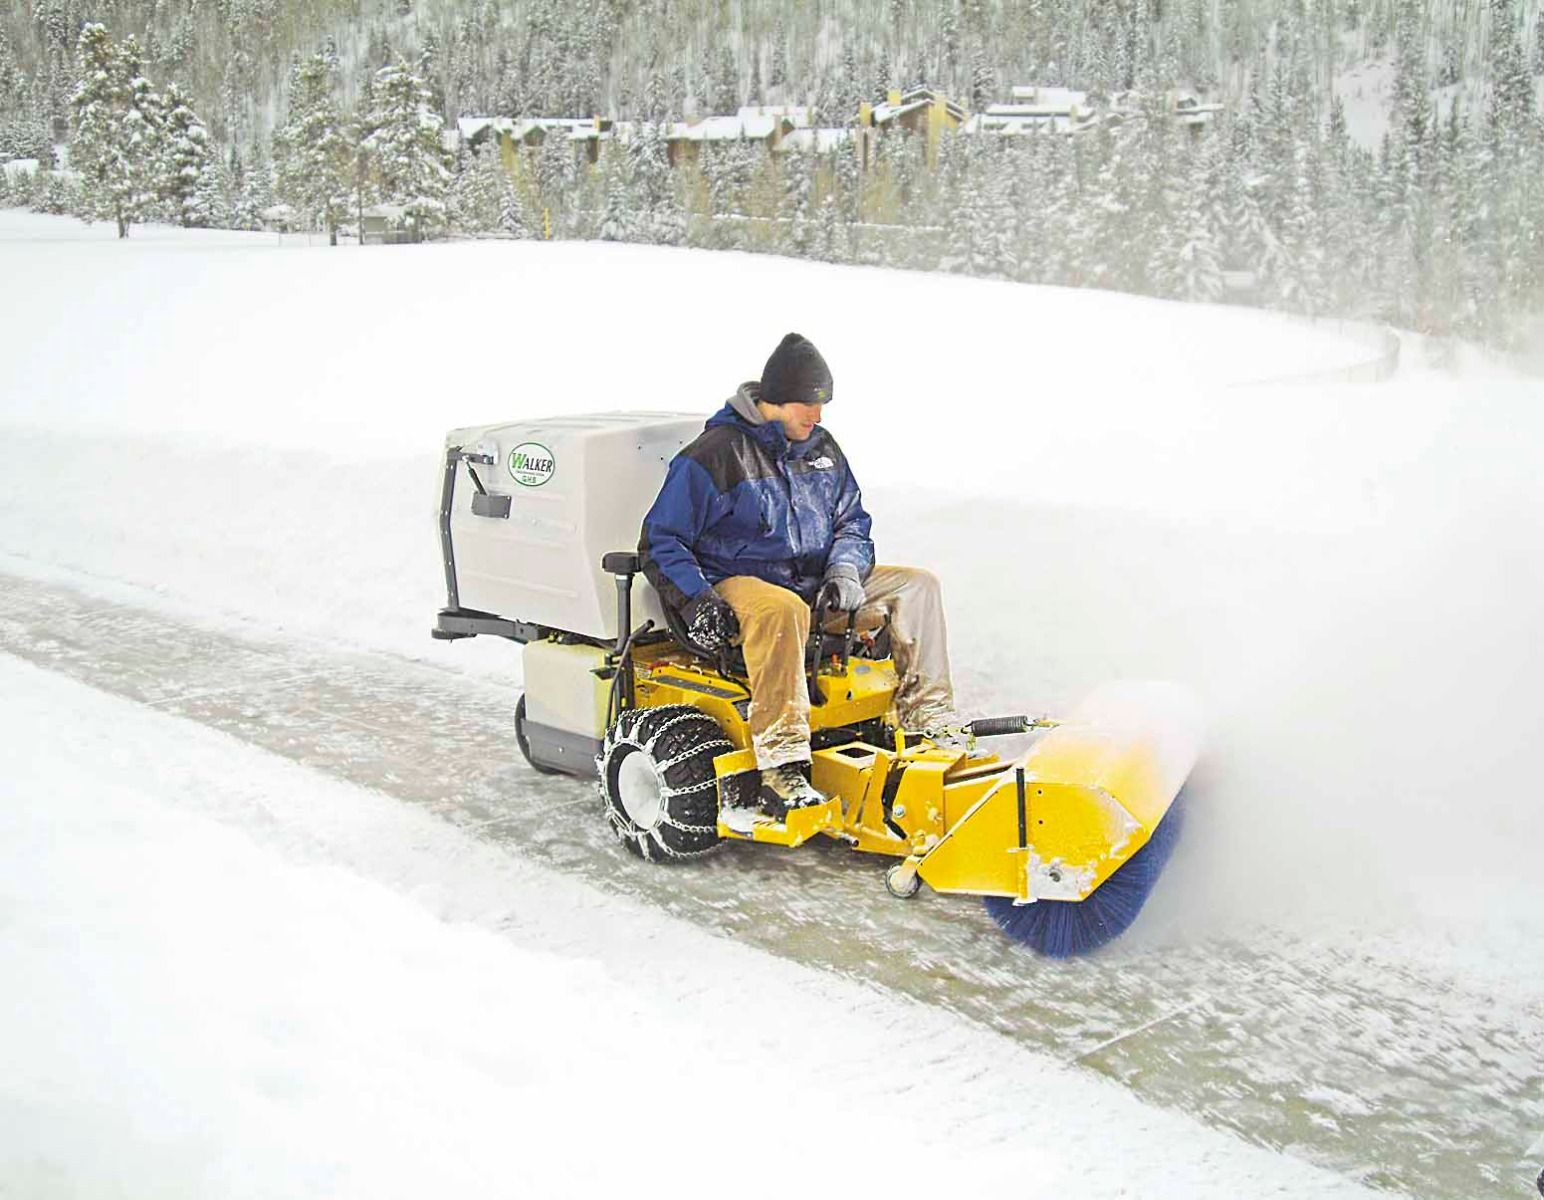 Ideal for sweeping light snow on hard surfaces